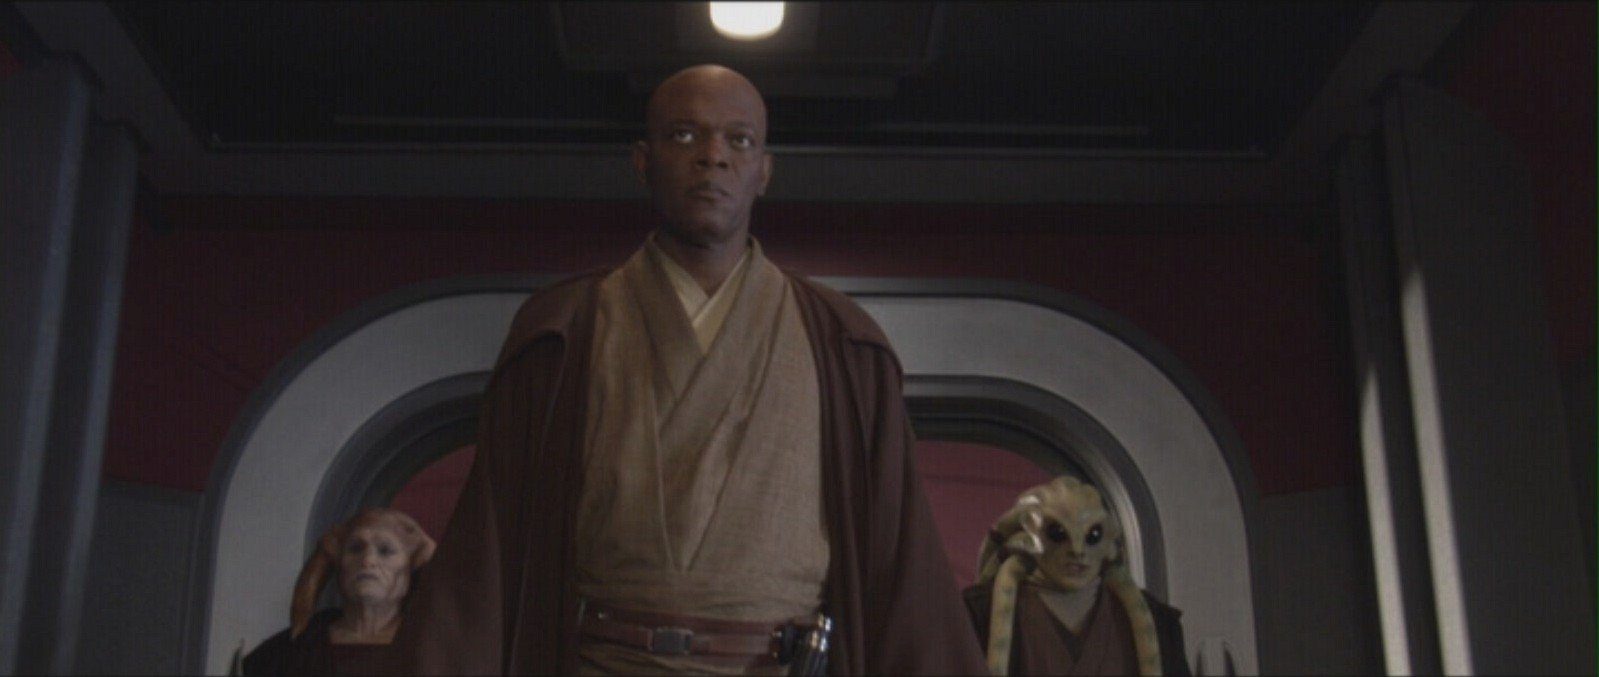 Free Download Mace Windu Images Star Wars Revenge Of The Sith Hd Wallpaper And 1599x677 For Your Desktop Mobile Tablet Explore 45 Mace Wallpaper Mace Wallpaper Mace Windu Wallpapers